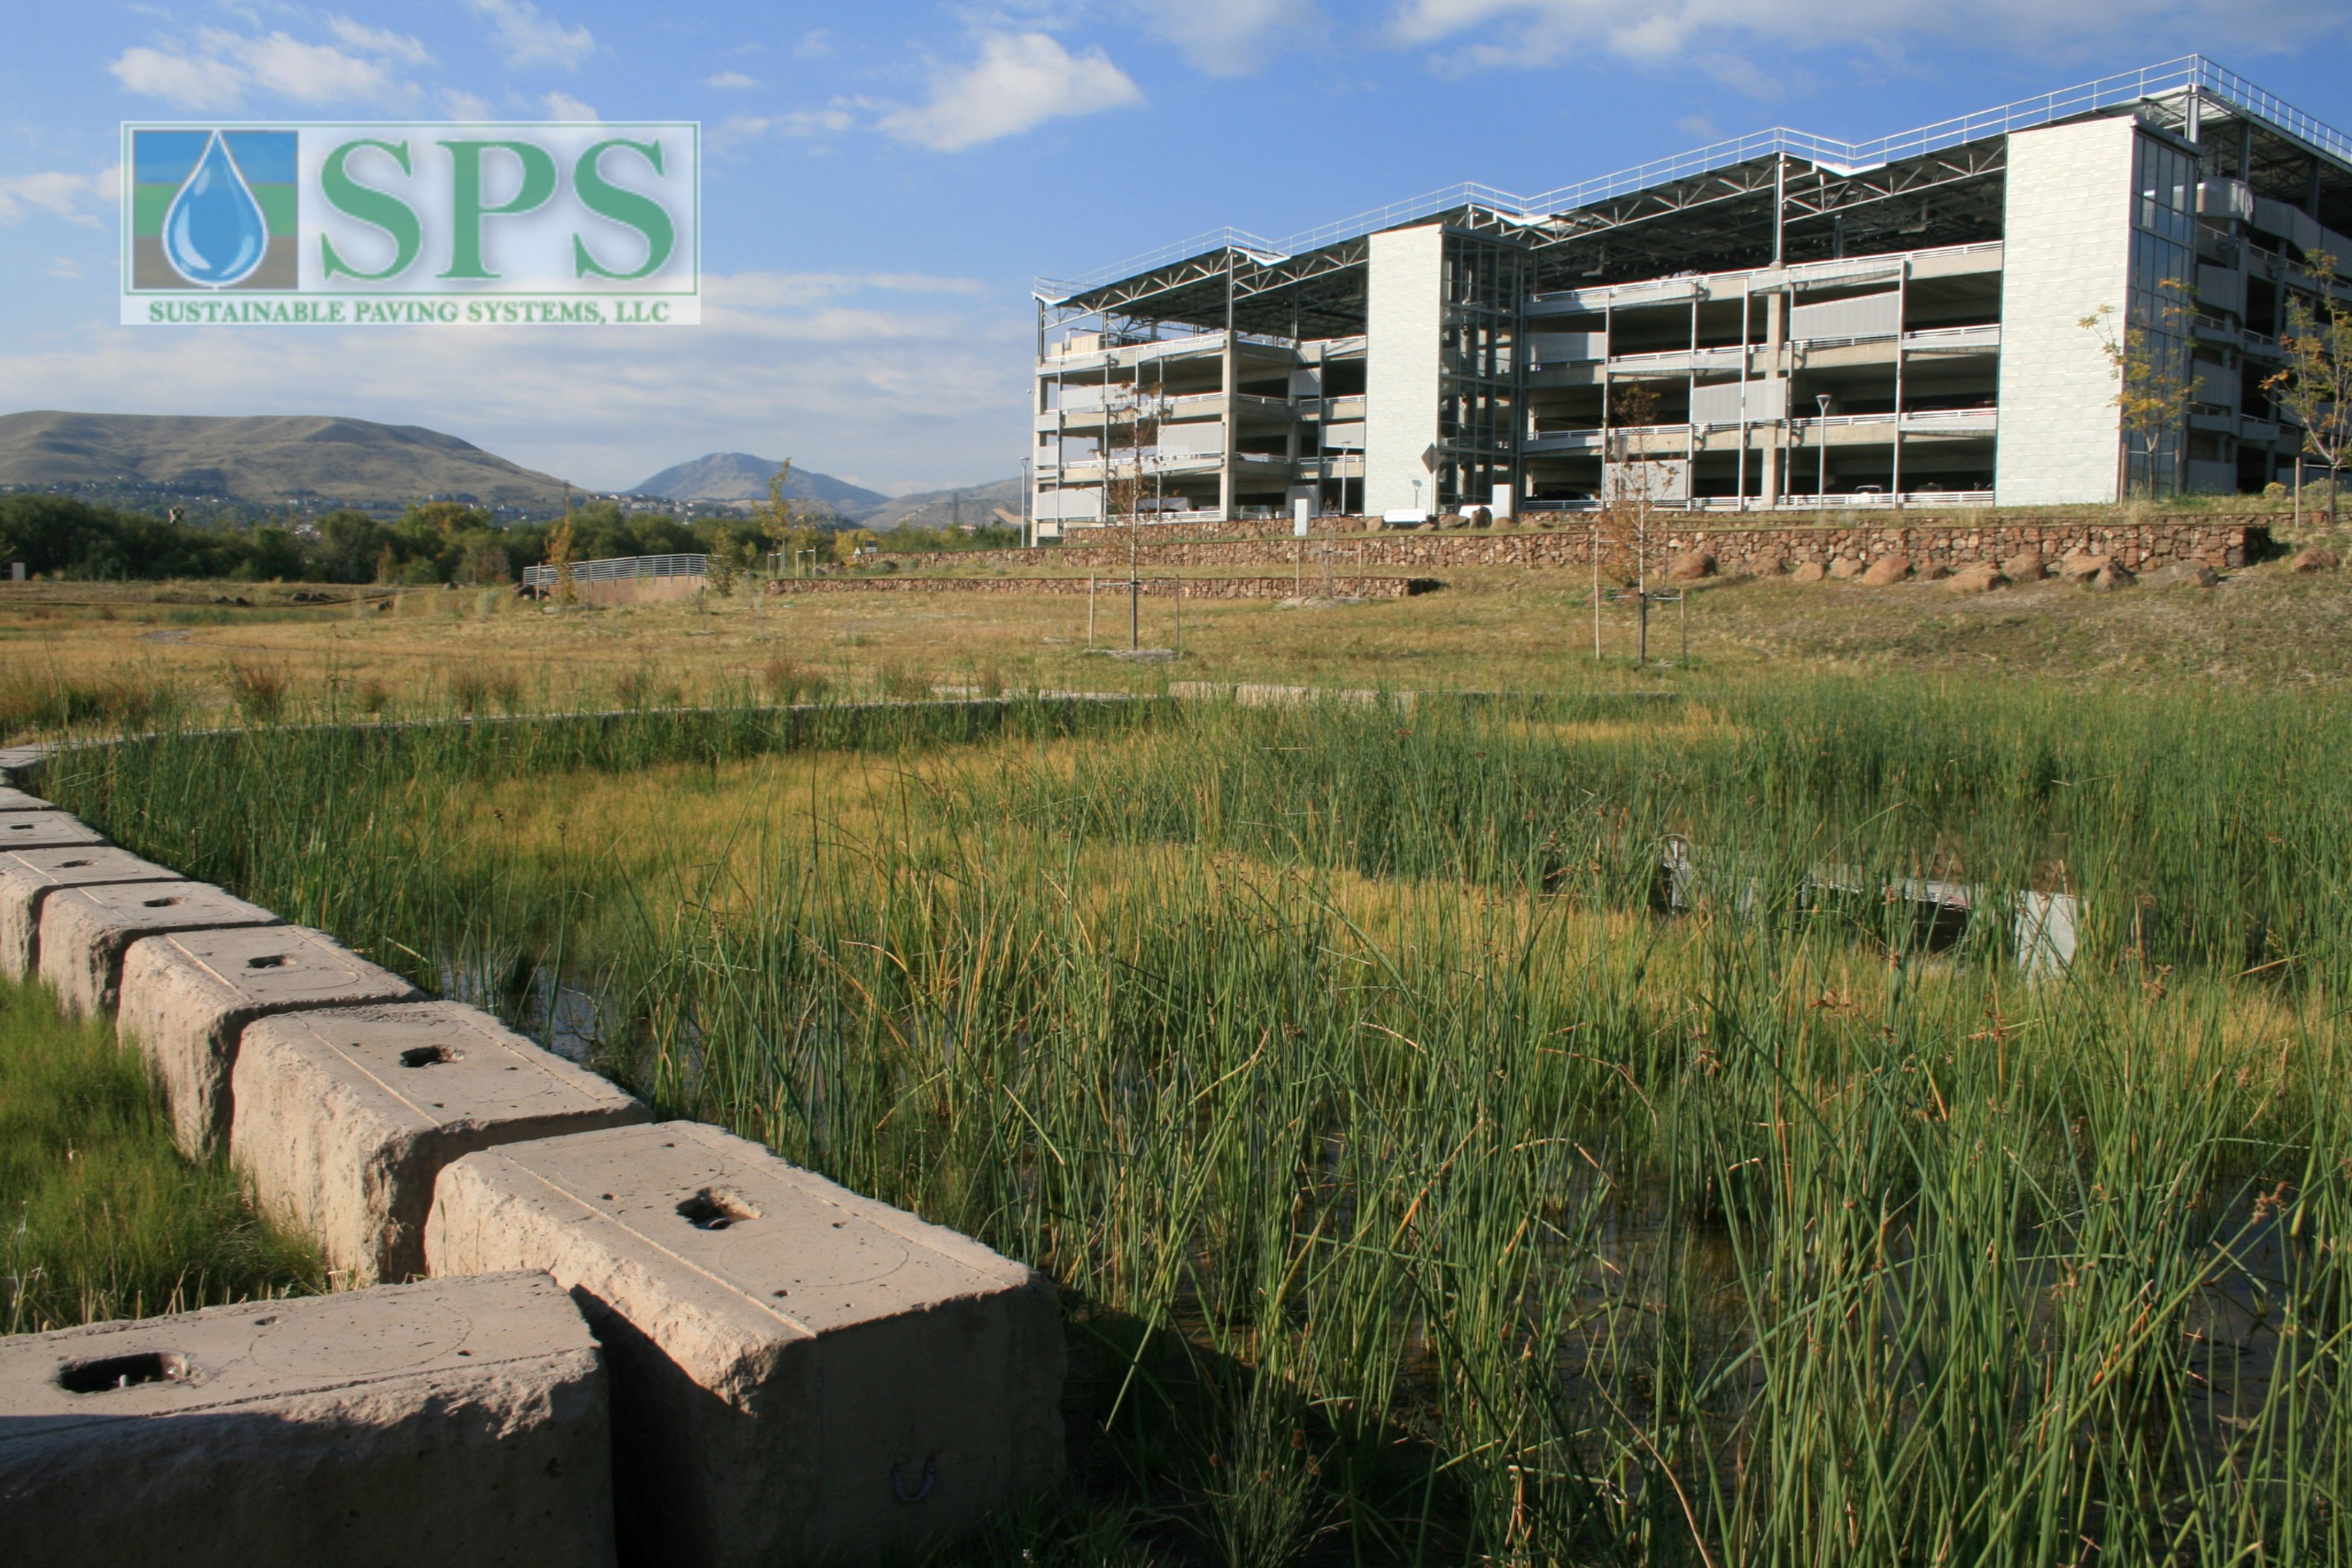 Grasscrete Partially Concealed System At Nrel Detention Pond_01